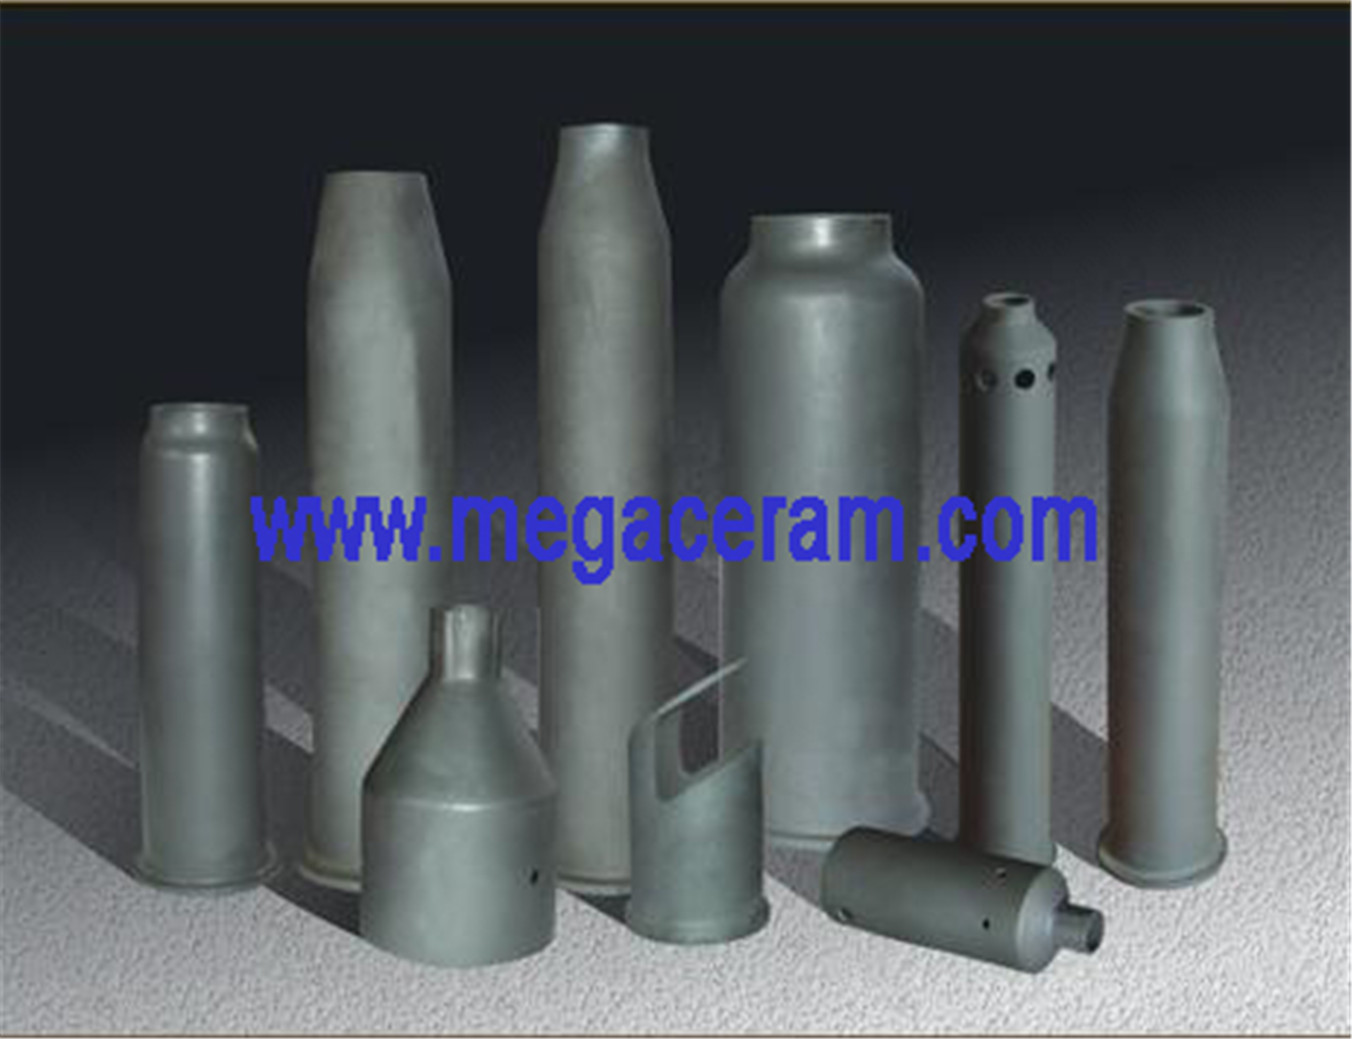 Chinese (Reaction Boned Silicon Carbide /RBSIC) SISIC Burner Nozzle